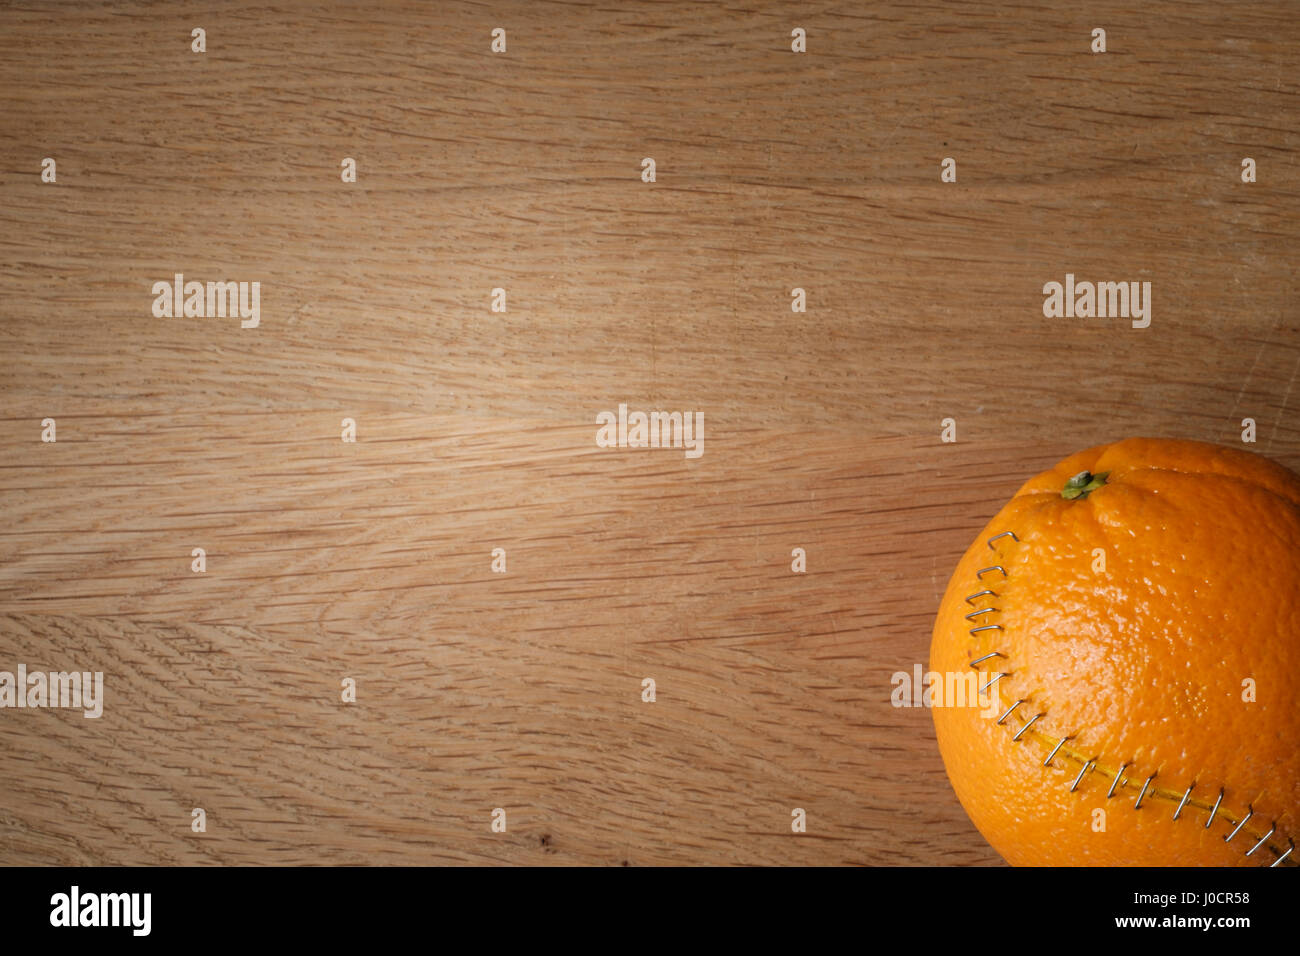 orange with stainless steel stitches that hold the husk together Stock Photo